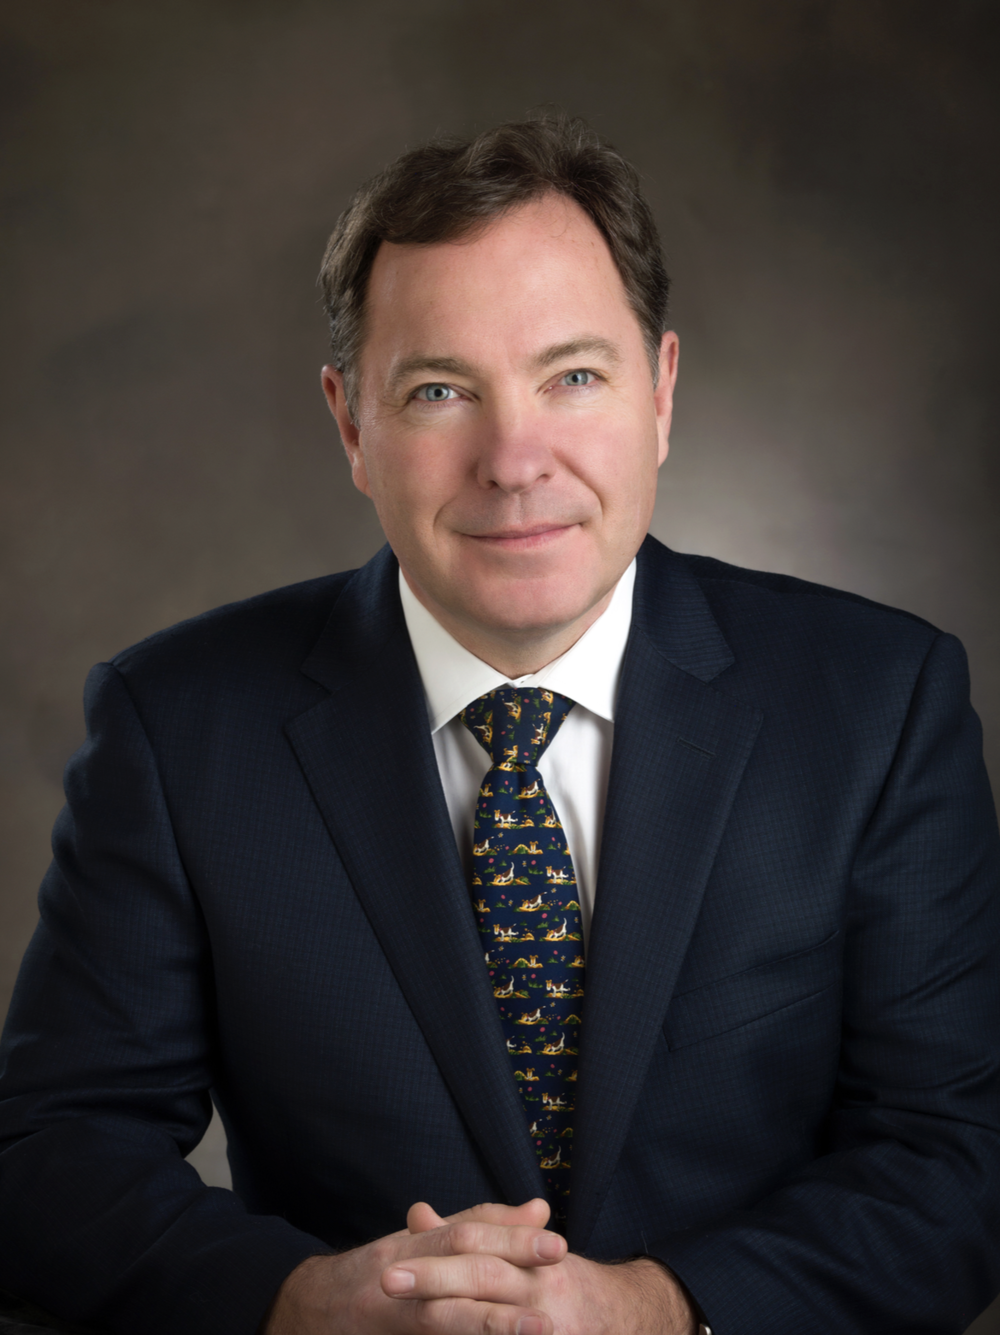 Dr. Brent Norton, CEO and Executive Chairman